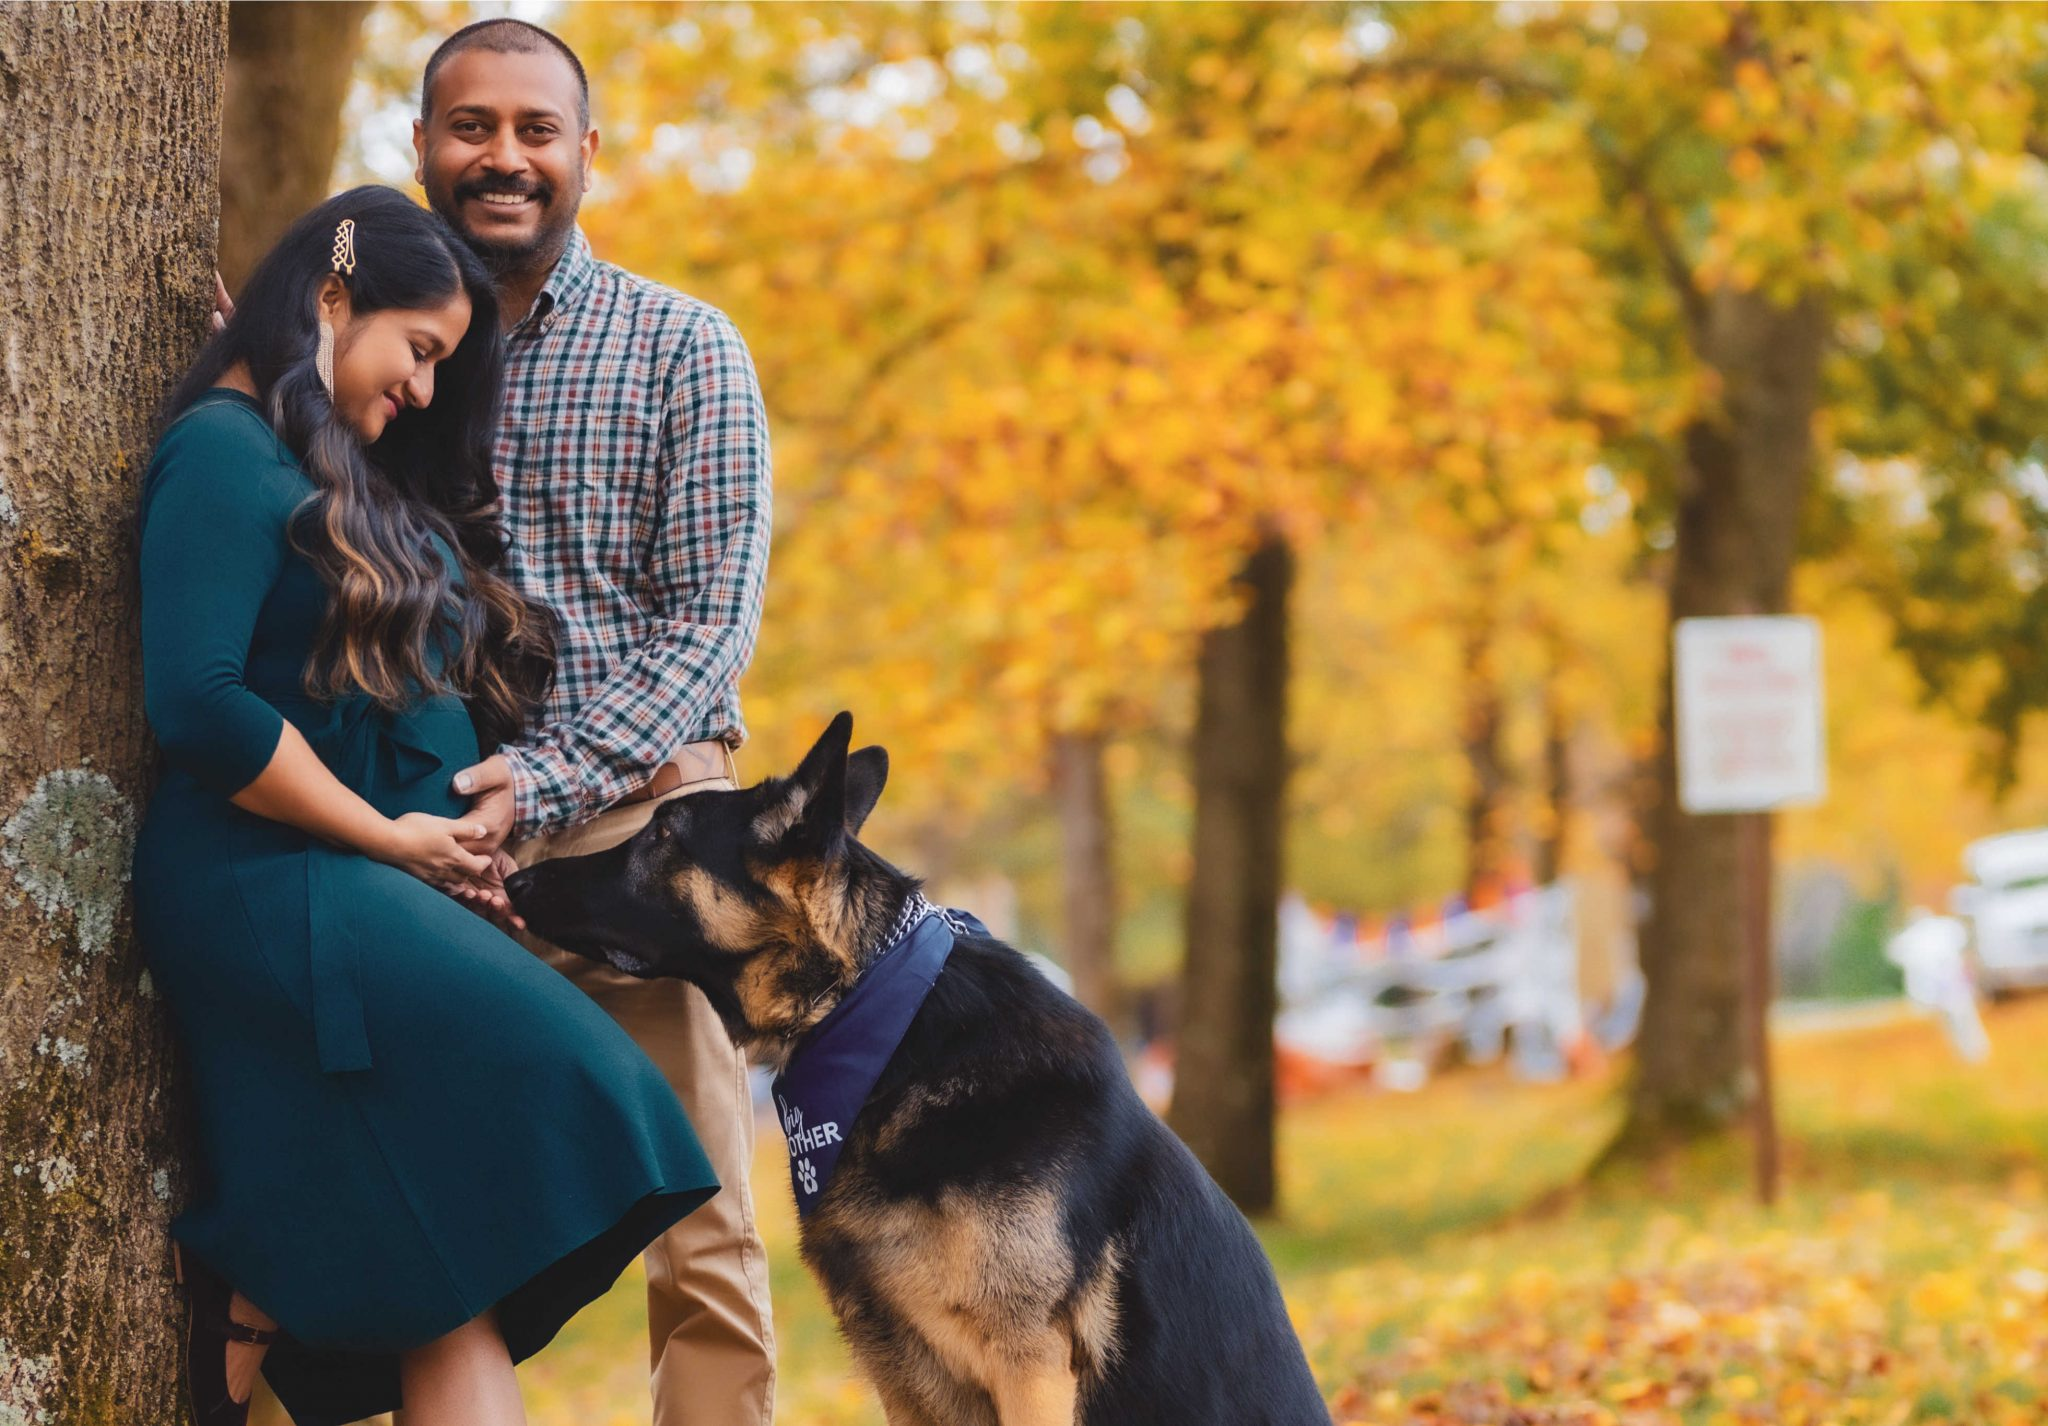 Fall Pregnancy Announcement by top Maryland life and style blogger, Dreaming Loud |Pregnancy Announcement by popular Maryland lifestyle blog, Dreaming Loud: image of a man wearing a blue and red plaid shirt and khaki pants and a pregnant woman wearing a blue maternity dress, statement earrings, and purple velvet shoes standing together next to their German Shepard dog that's wearing a 'Big Brother' bandana around his neck.